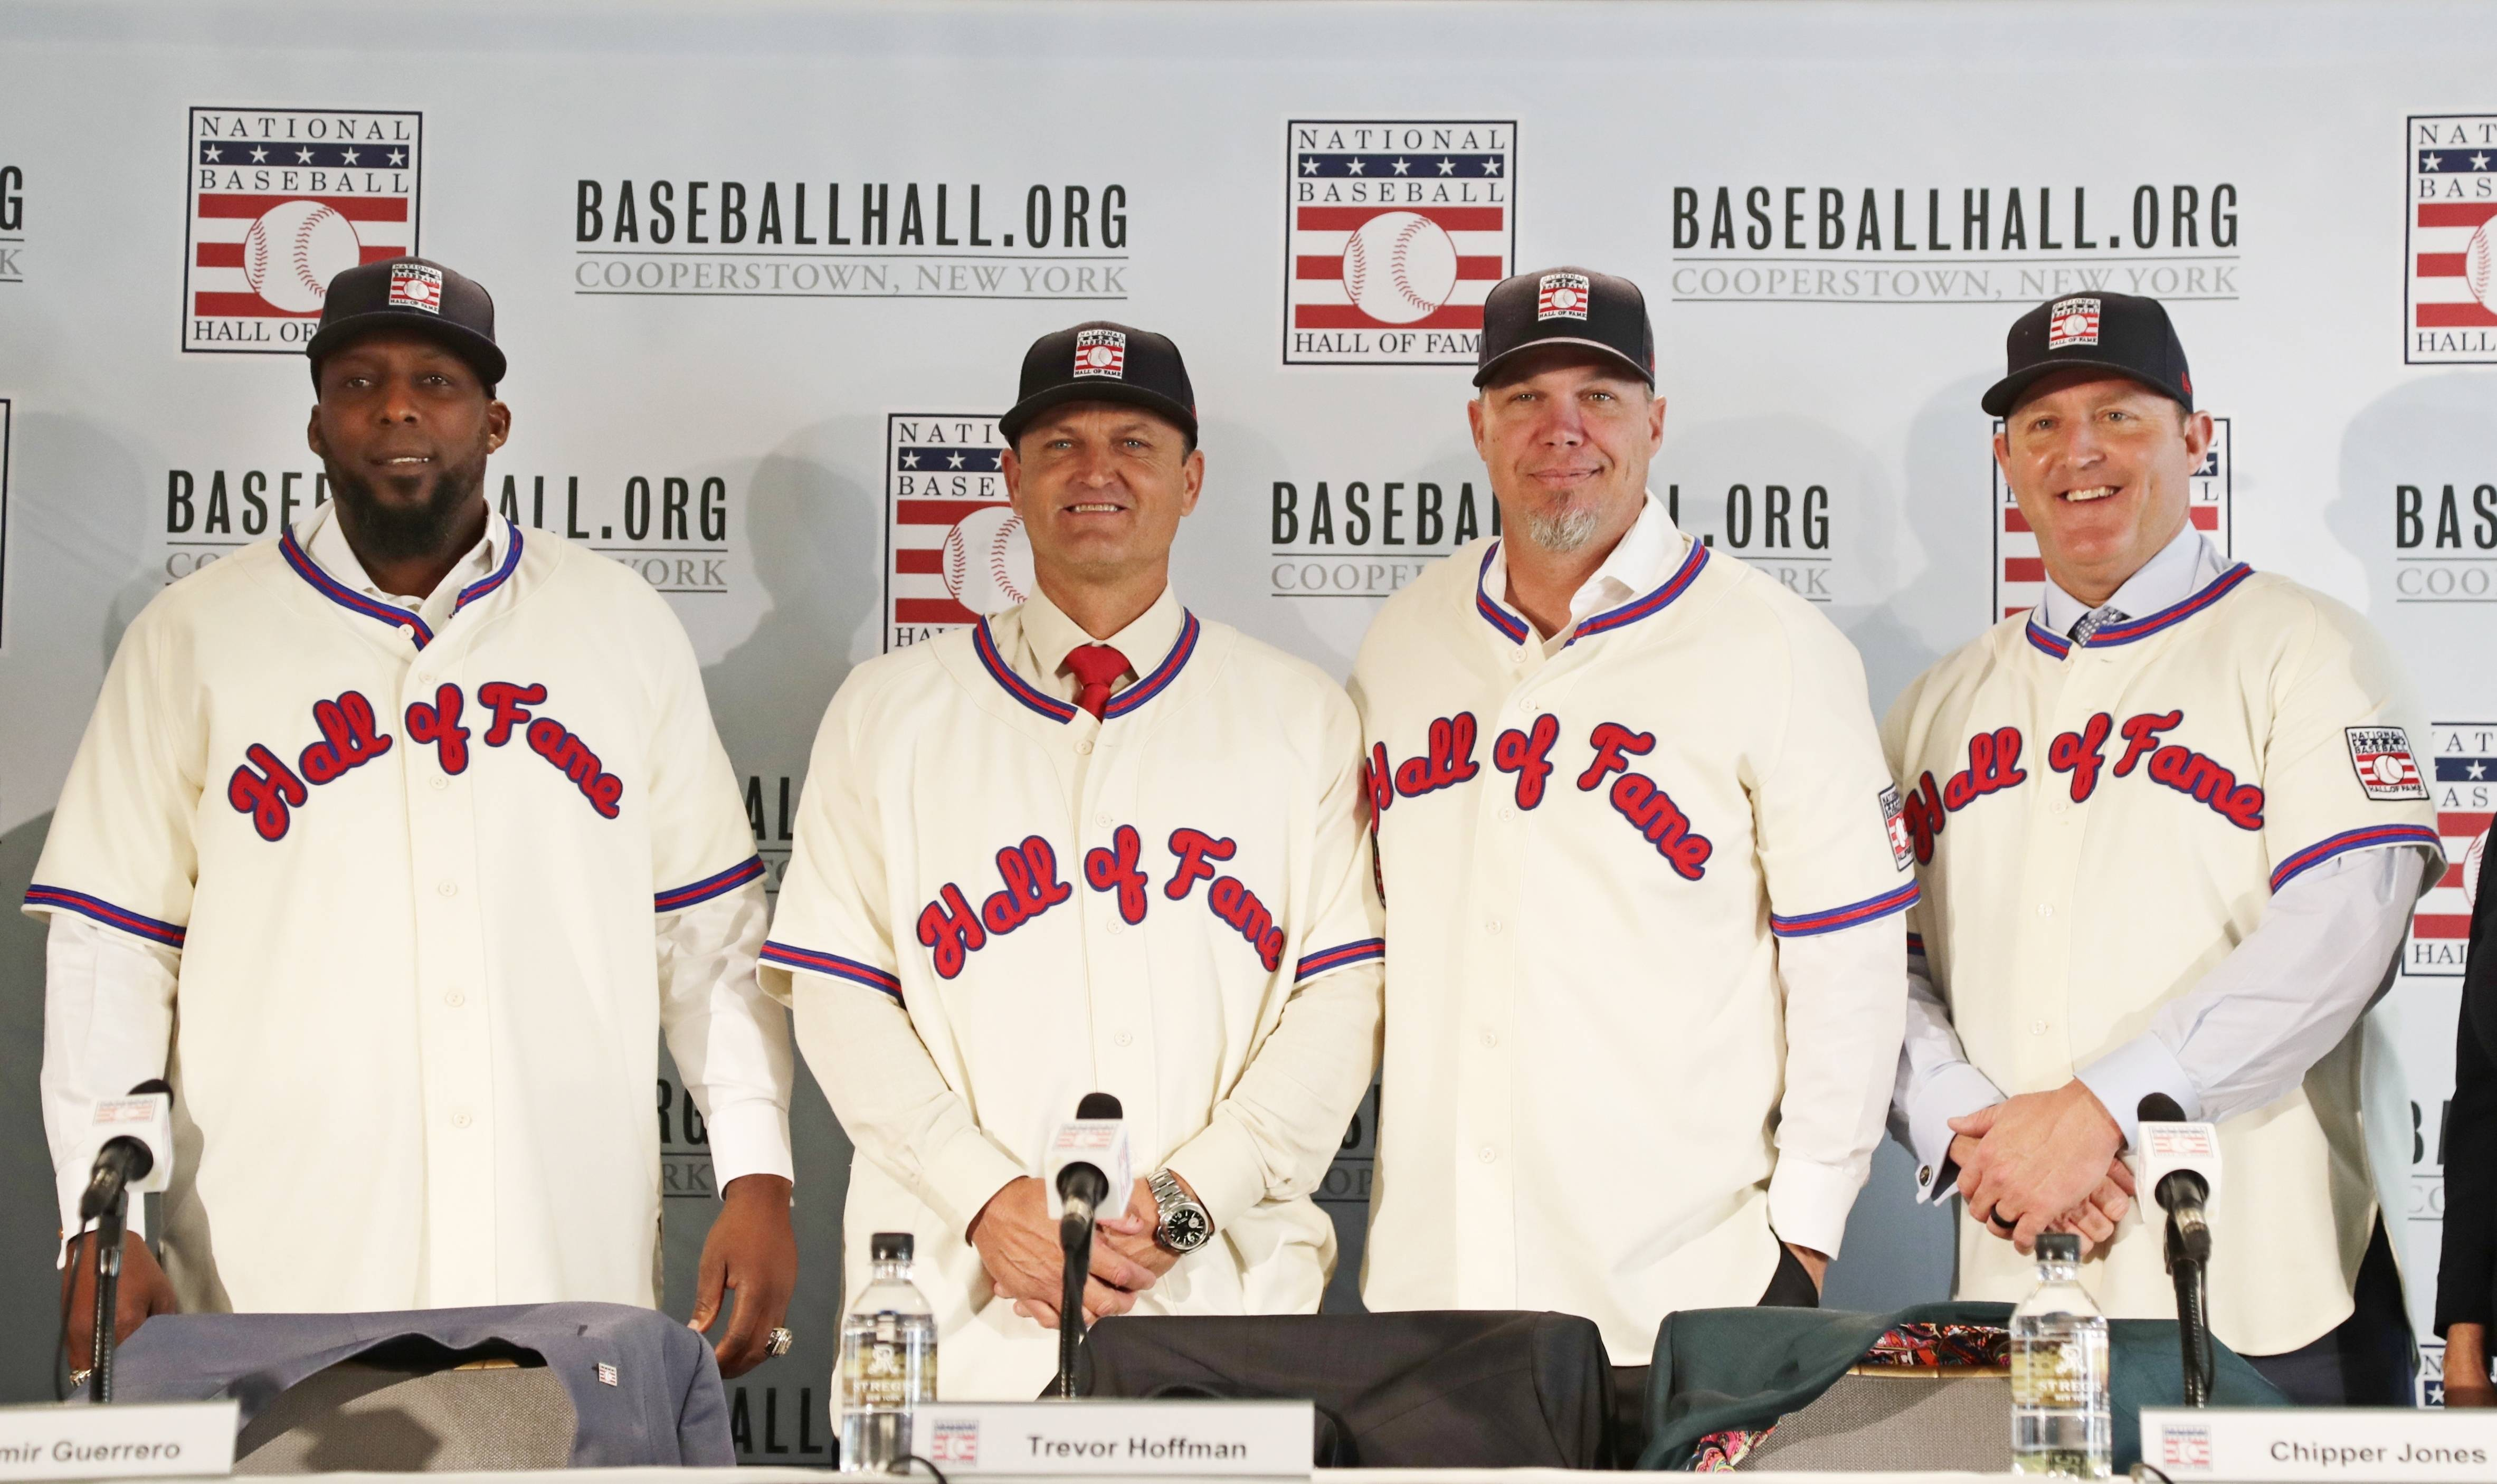 Baseball Hall of Fame inductees, from left, Vladimir Guerrero, Trevor Hoffman, Chipper Jones and Jim Thome, right, pose during news conference, Thursday, Jan. 25, 2018, in New York.